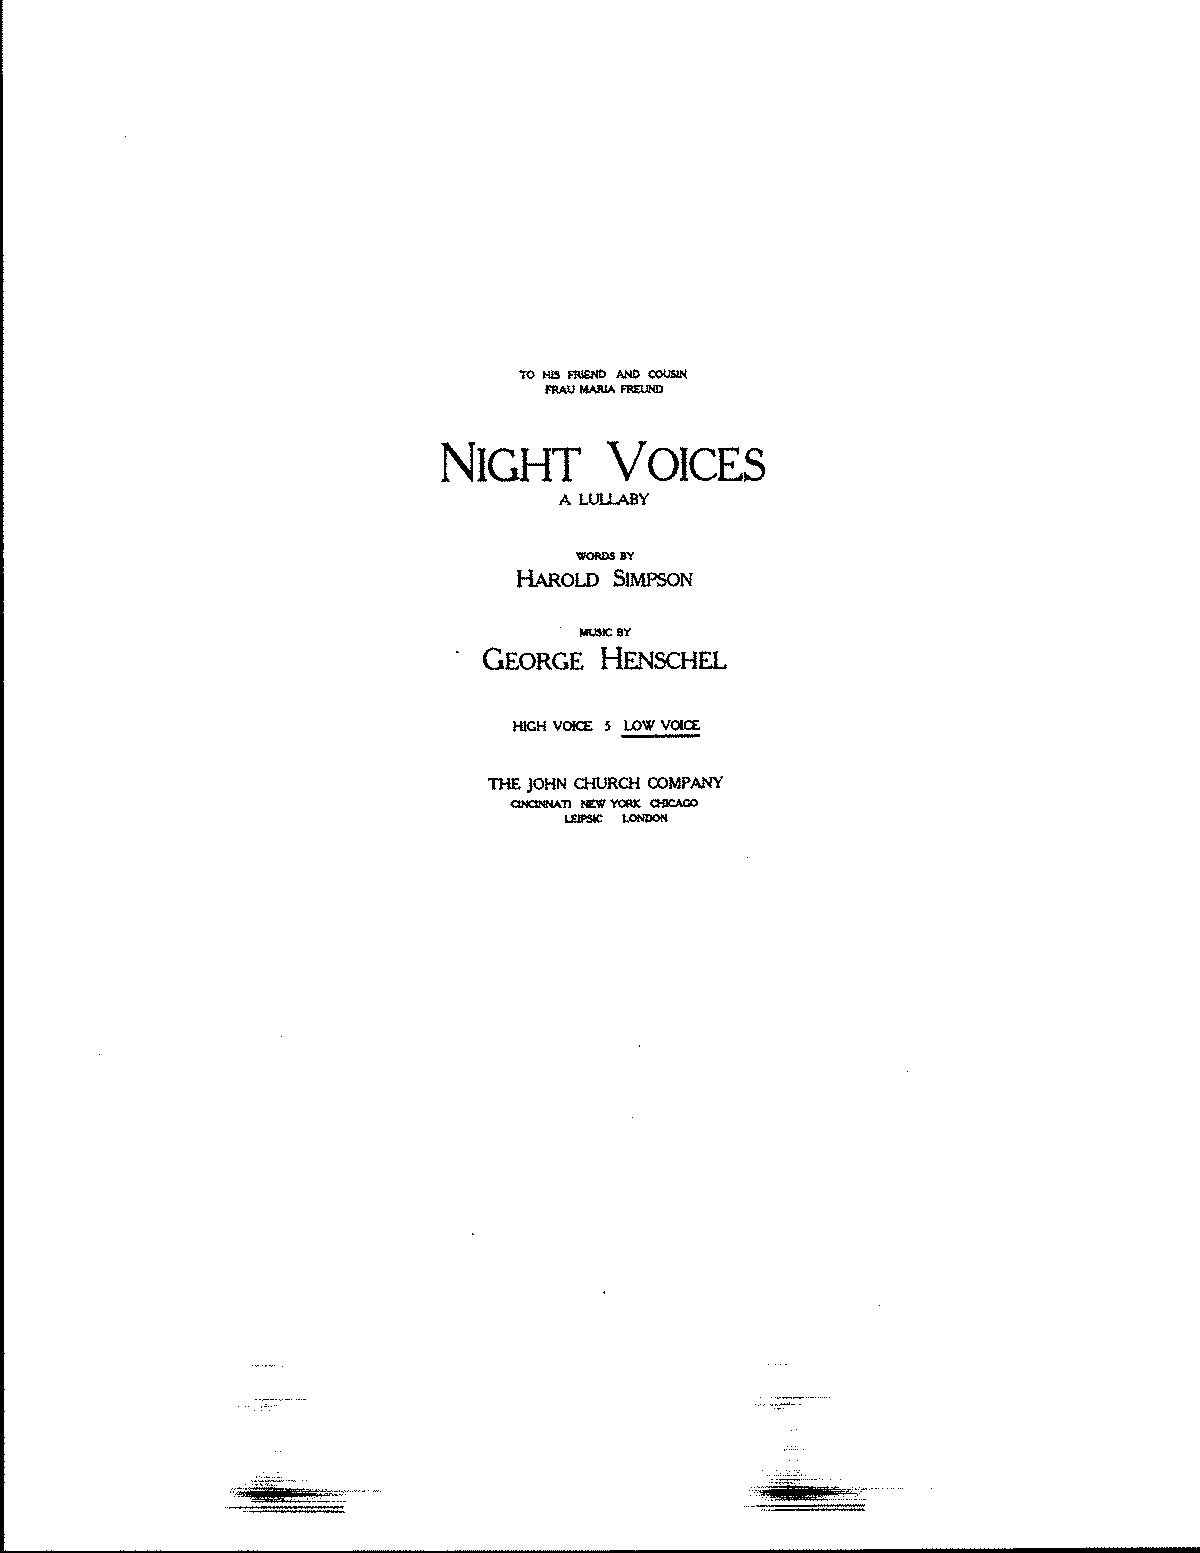 SIBLEY1802.1813.8524-Henschel Night Voices.pdf